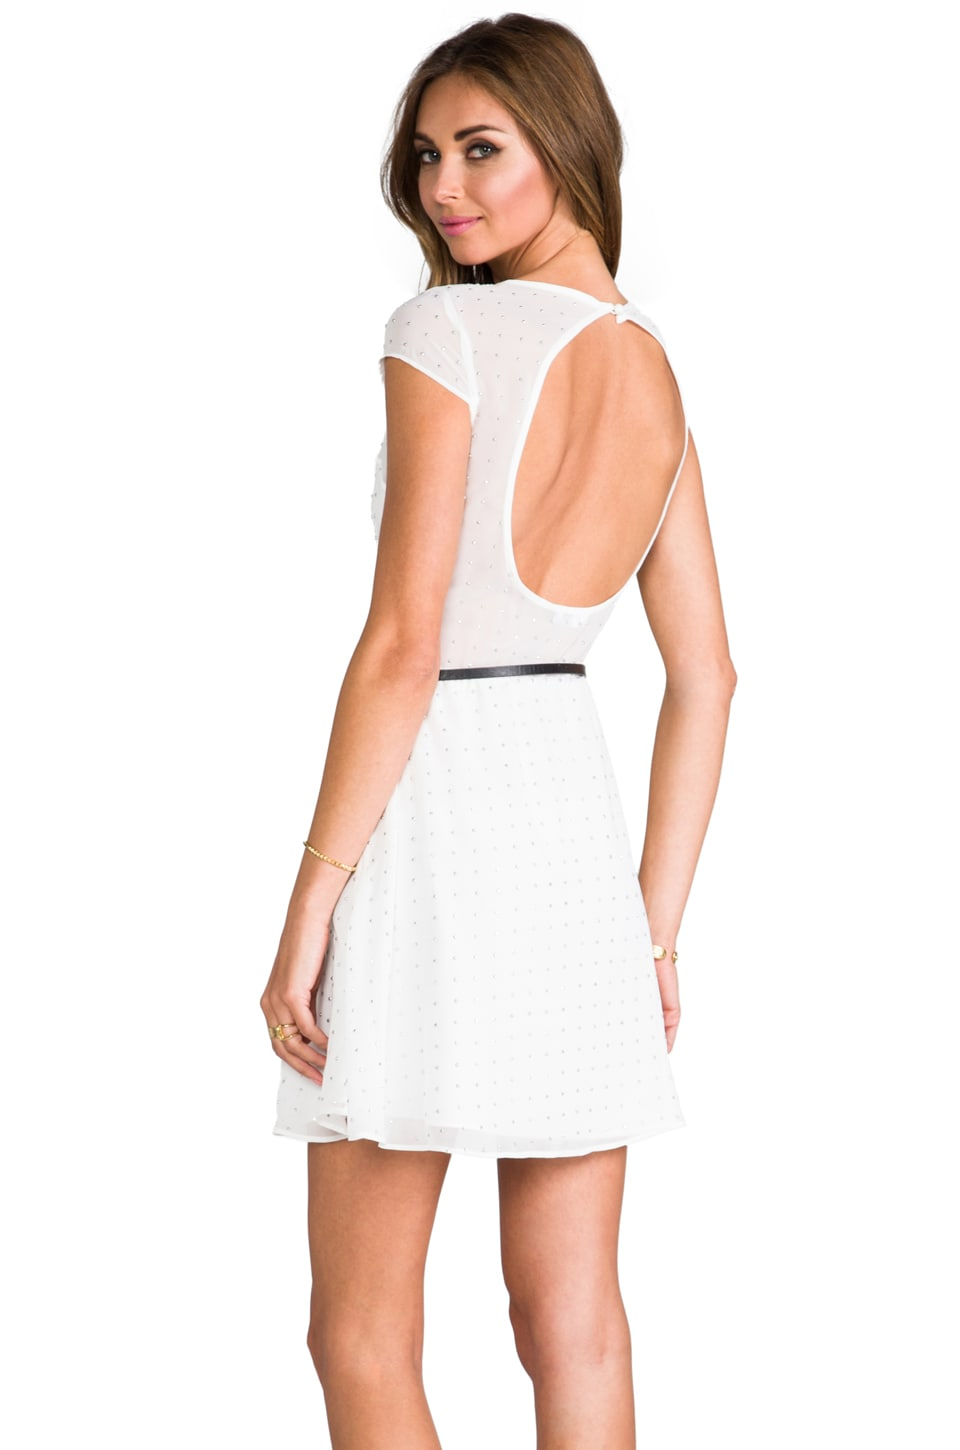 Dolce Vita Lia Crystal Dress in White